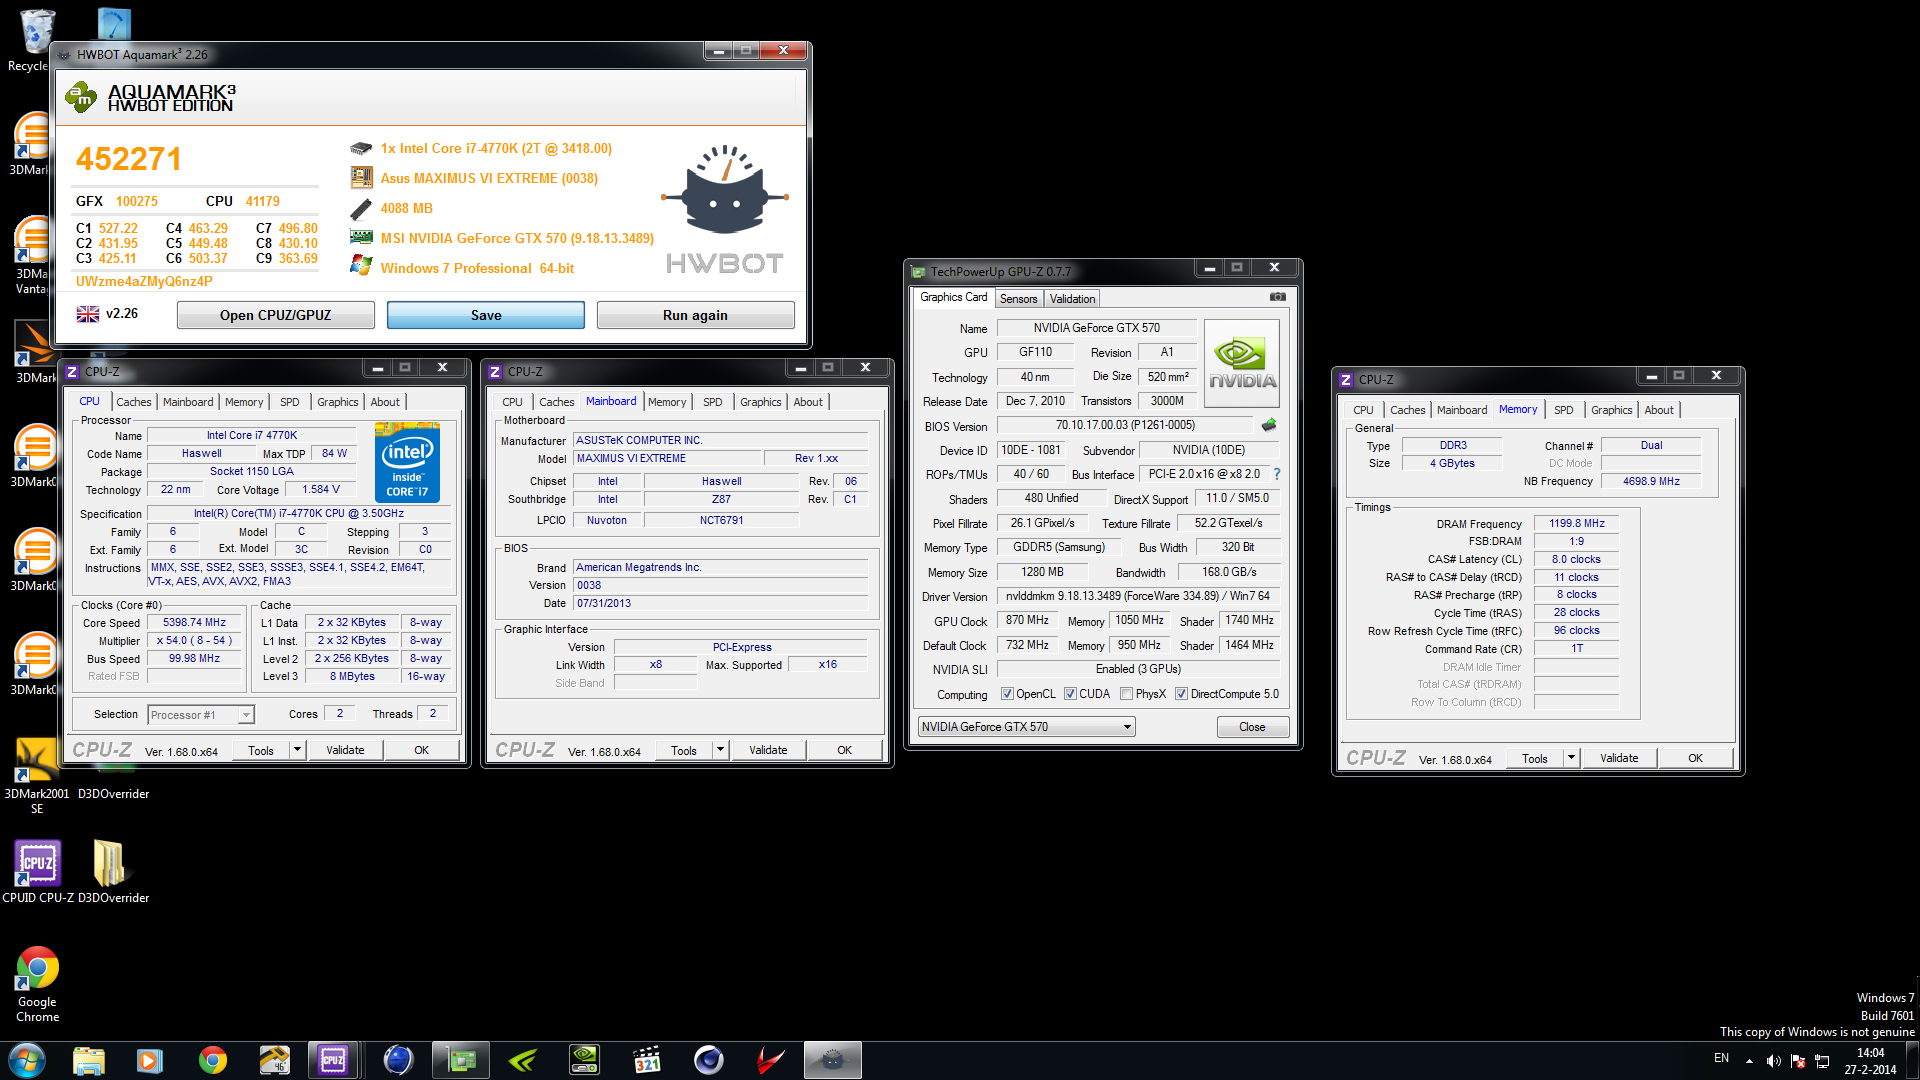 faust2016`s Aquamark score: 452271 marks with a GeForce GTX 570